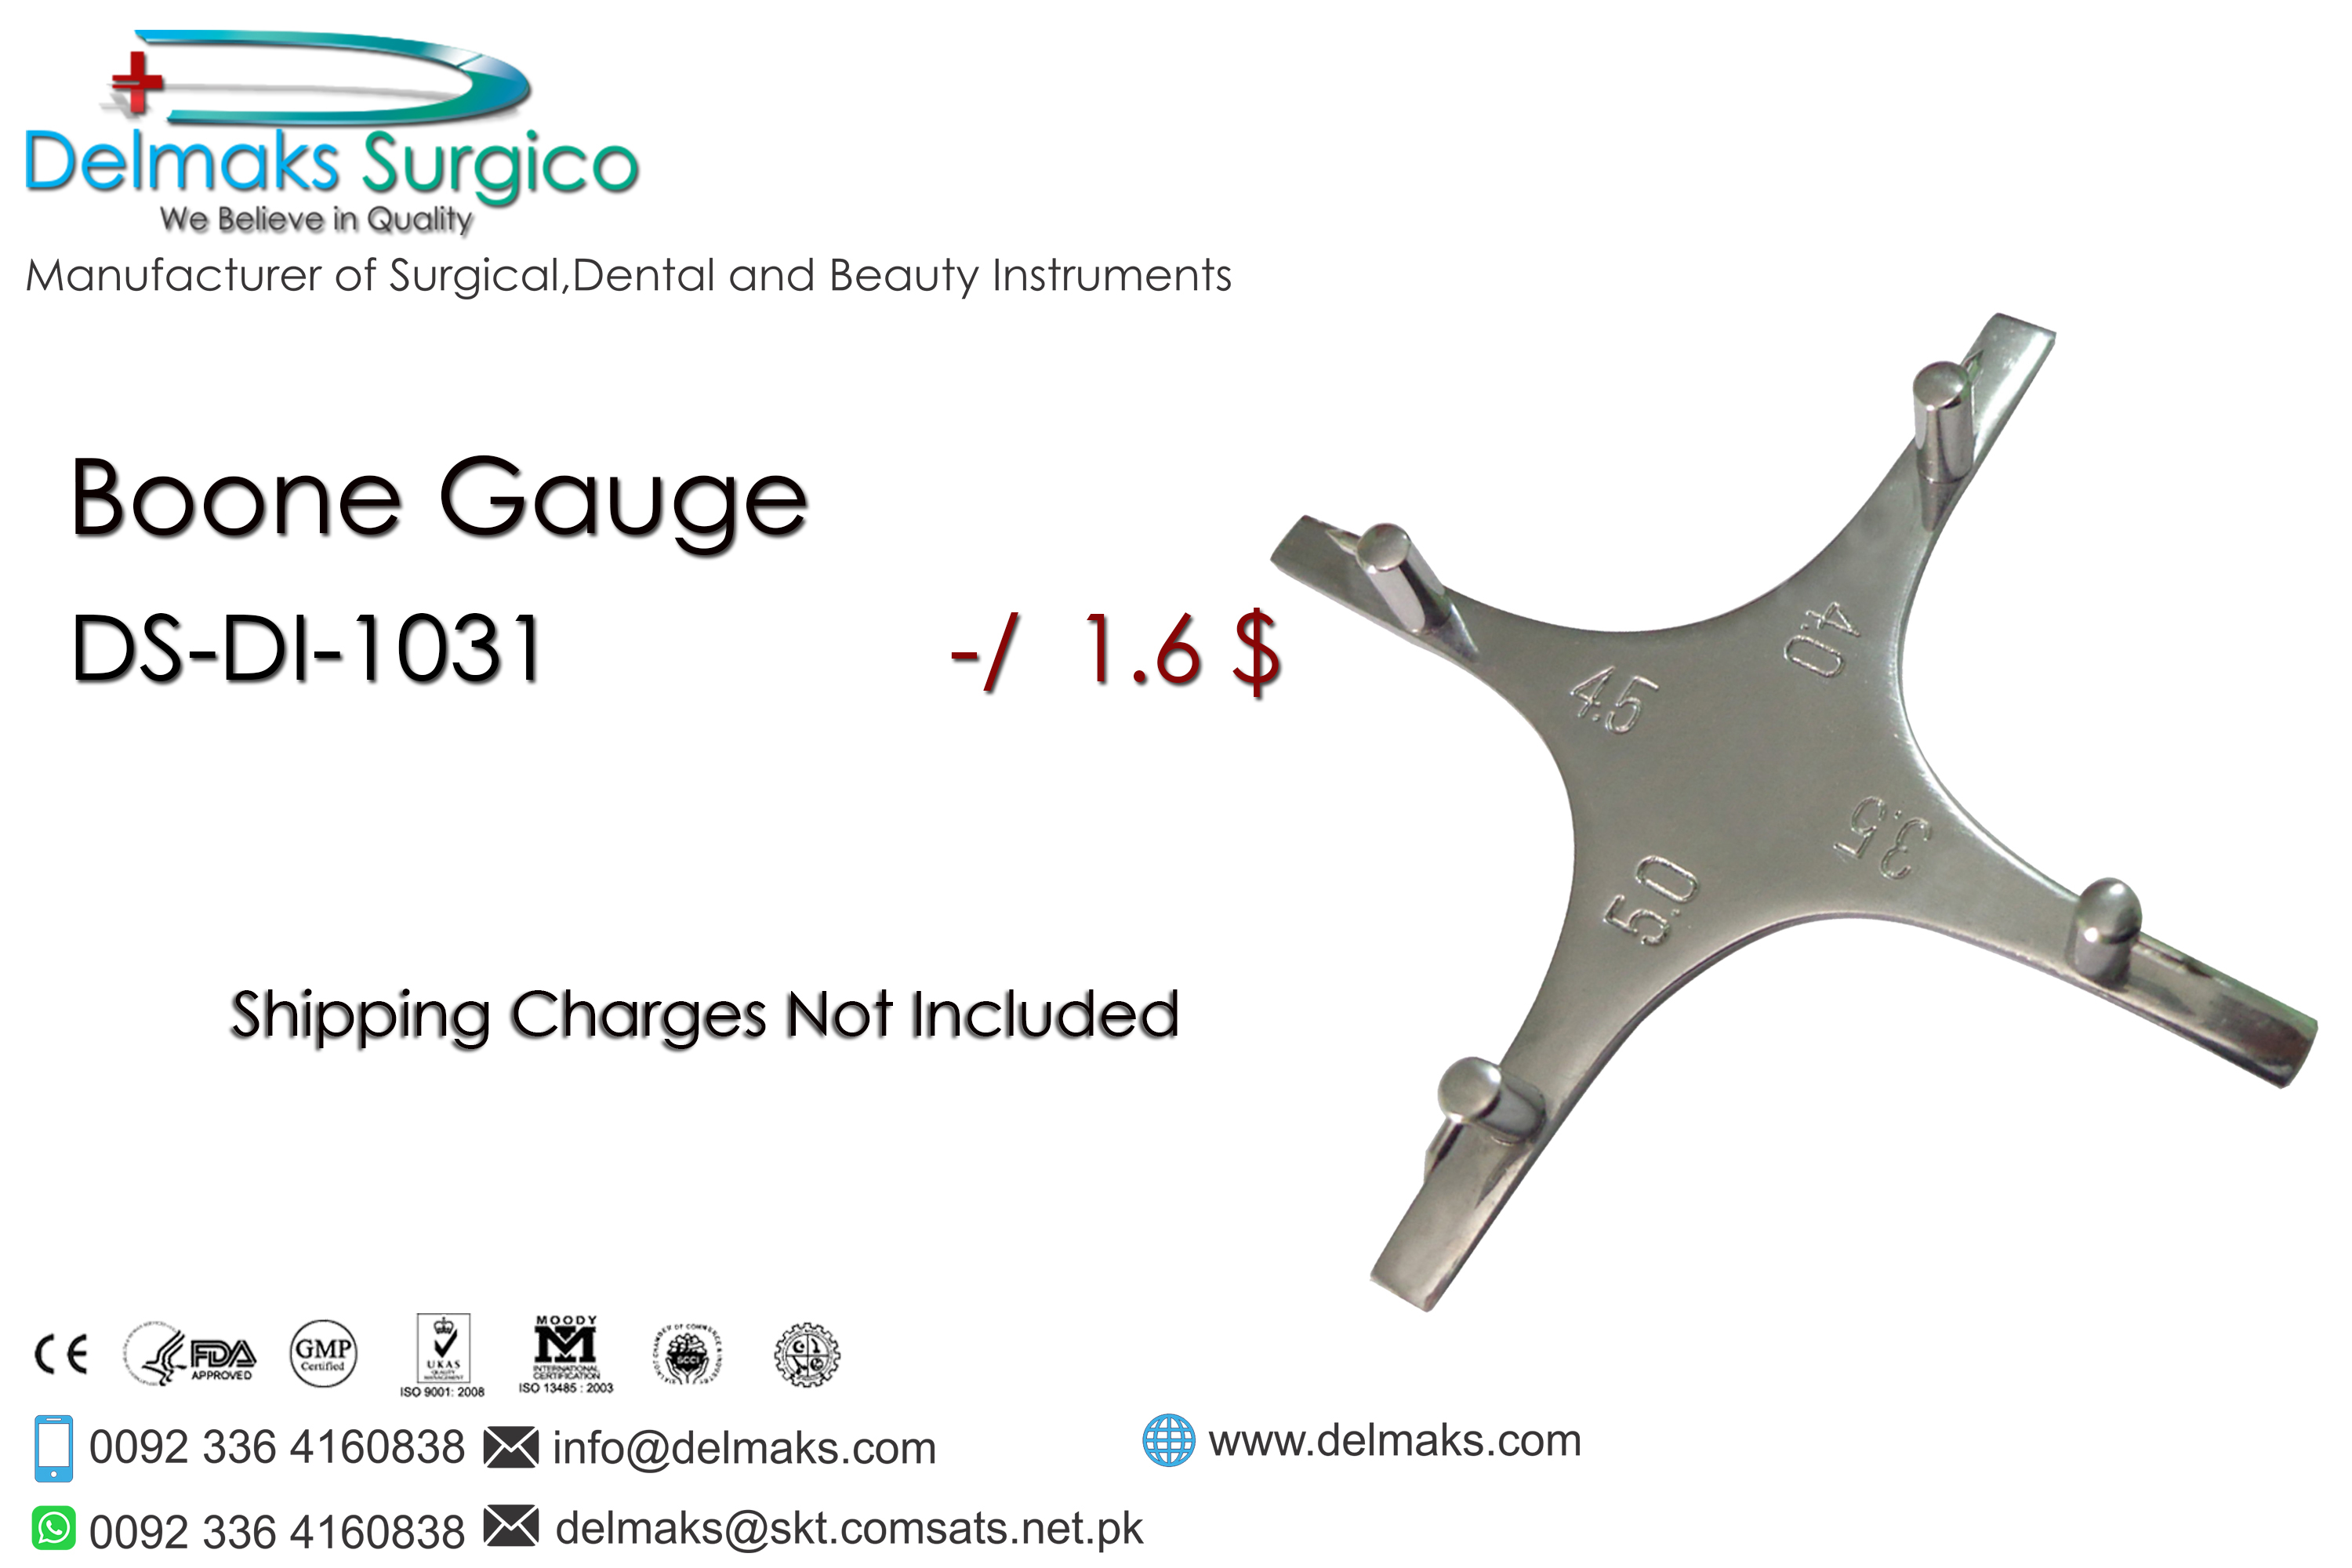 Boone Gauge-Measuring Instruments-Orthodontic Instruments-Dental Instruments-Delmaks Surgico